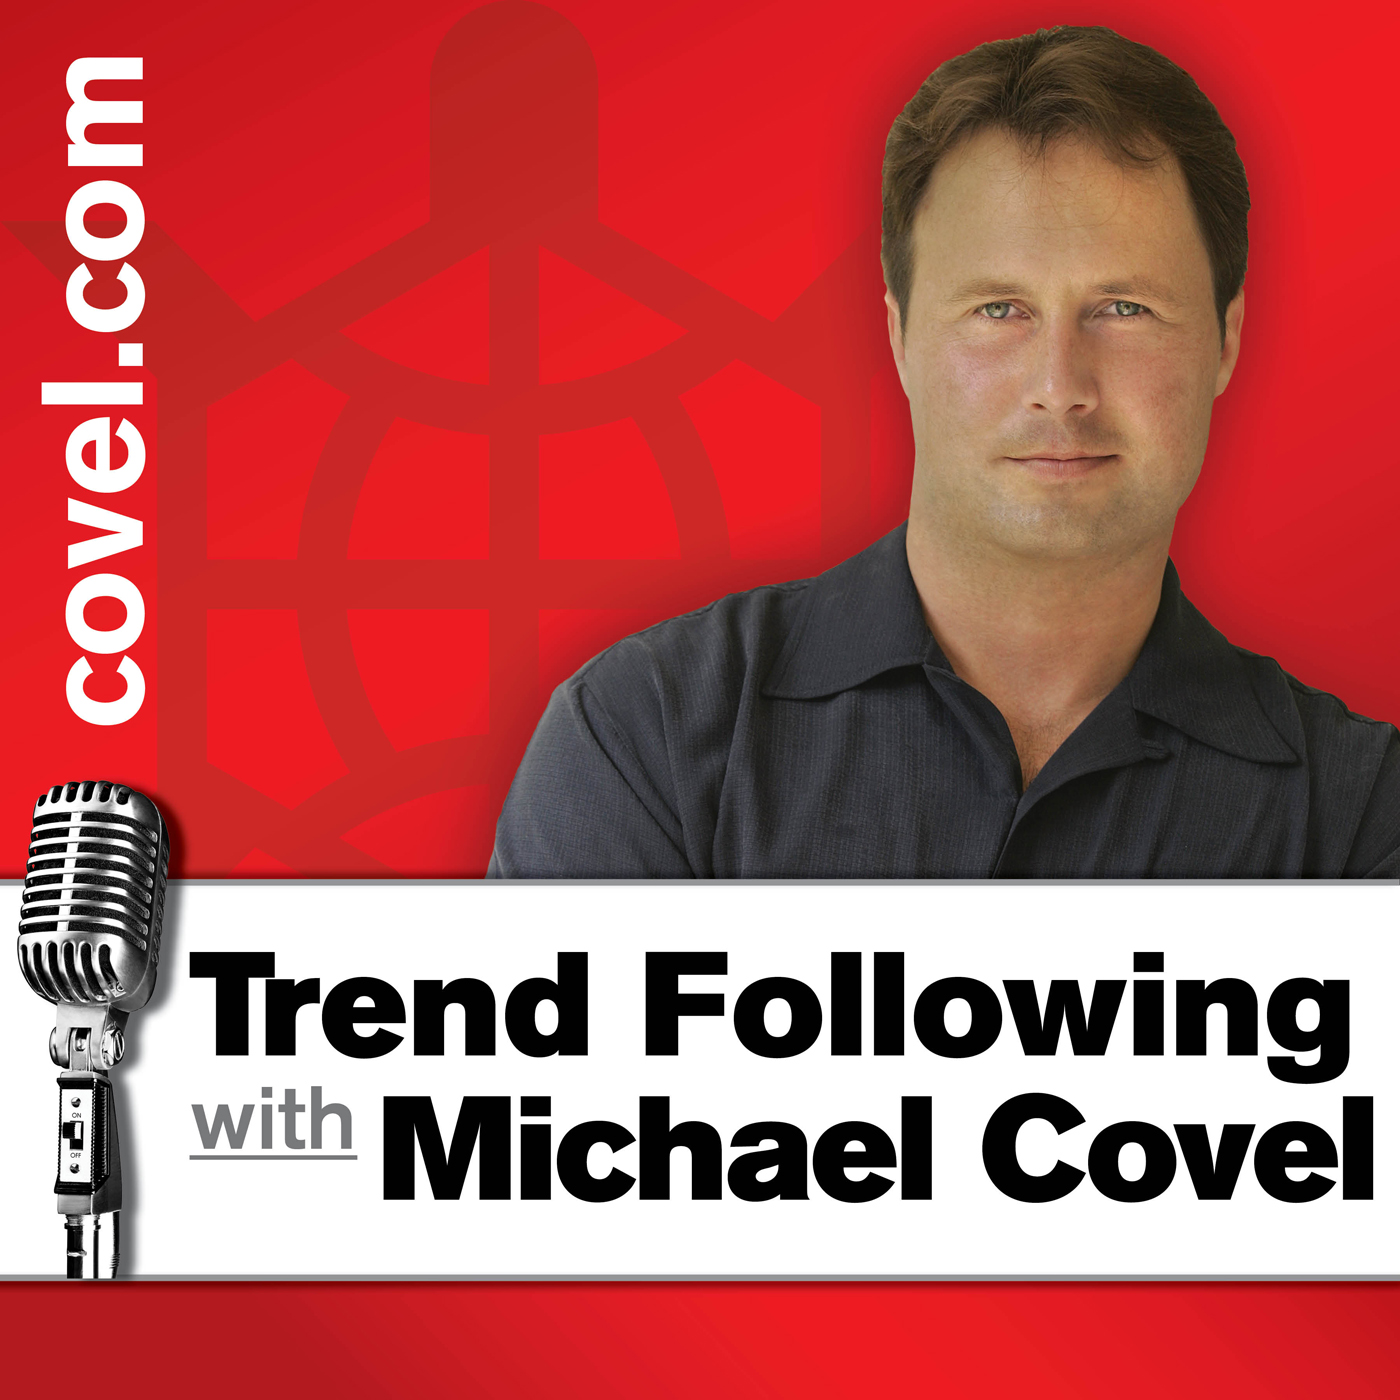 Ep. 110: You Can't Call The Top with Michael Covel on Trend Following Radio